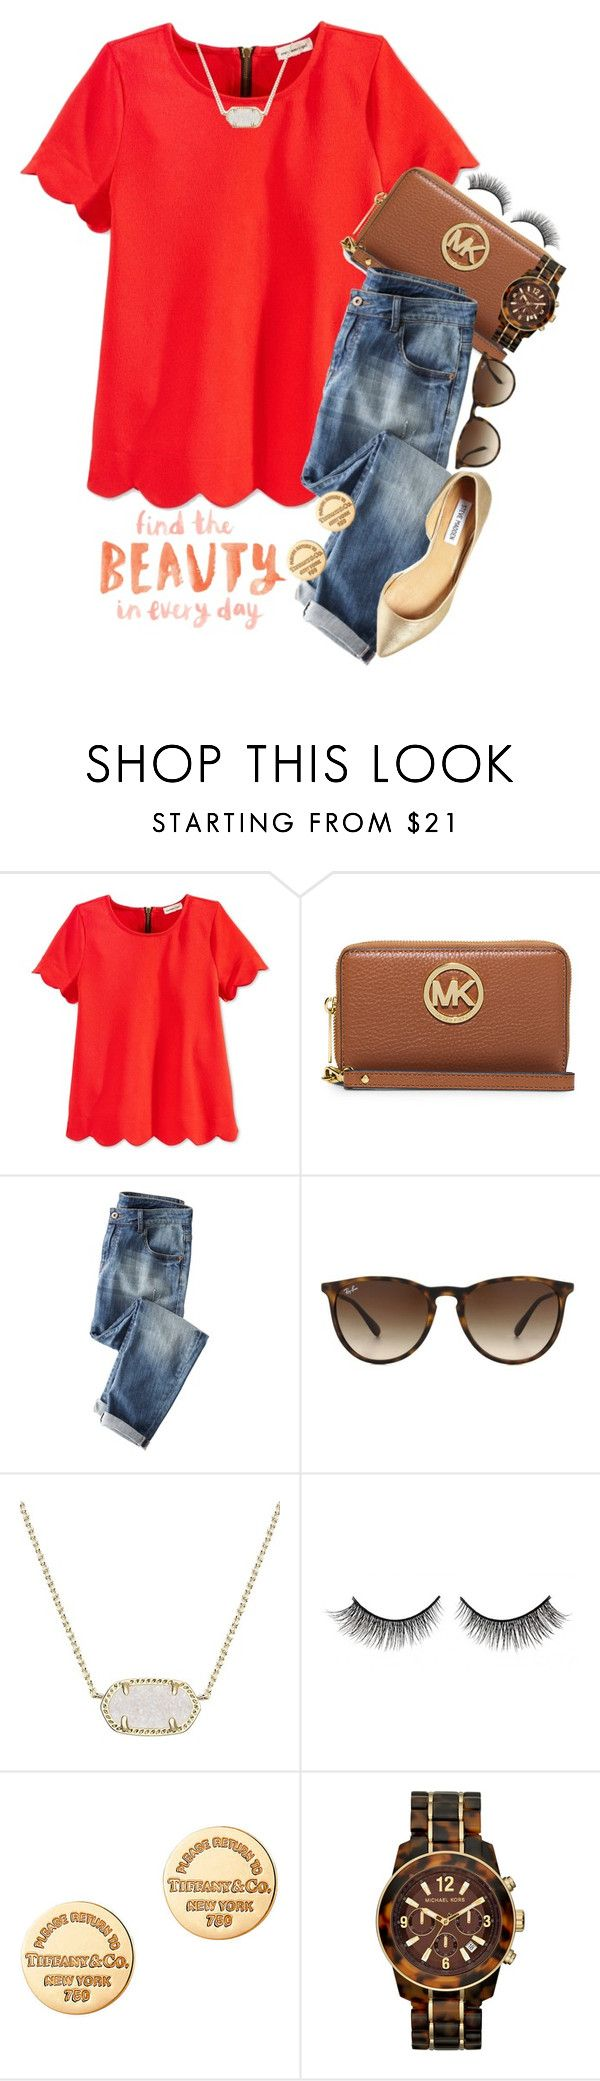 """fuller house is cute!!!"" by preppy-southern-gals ❤ liked on Polyvore featuring Monteau, MICHAEL Michael Kors, Wrap, Ray-Ban, Kendra Scott, Rimini, Tiffany & Co., Michael Kors and Steve Madden"